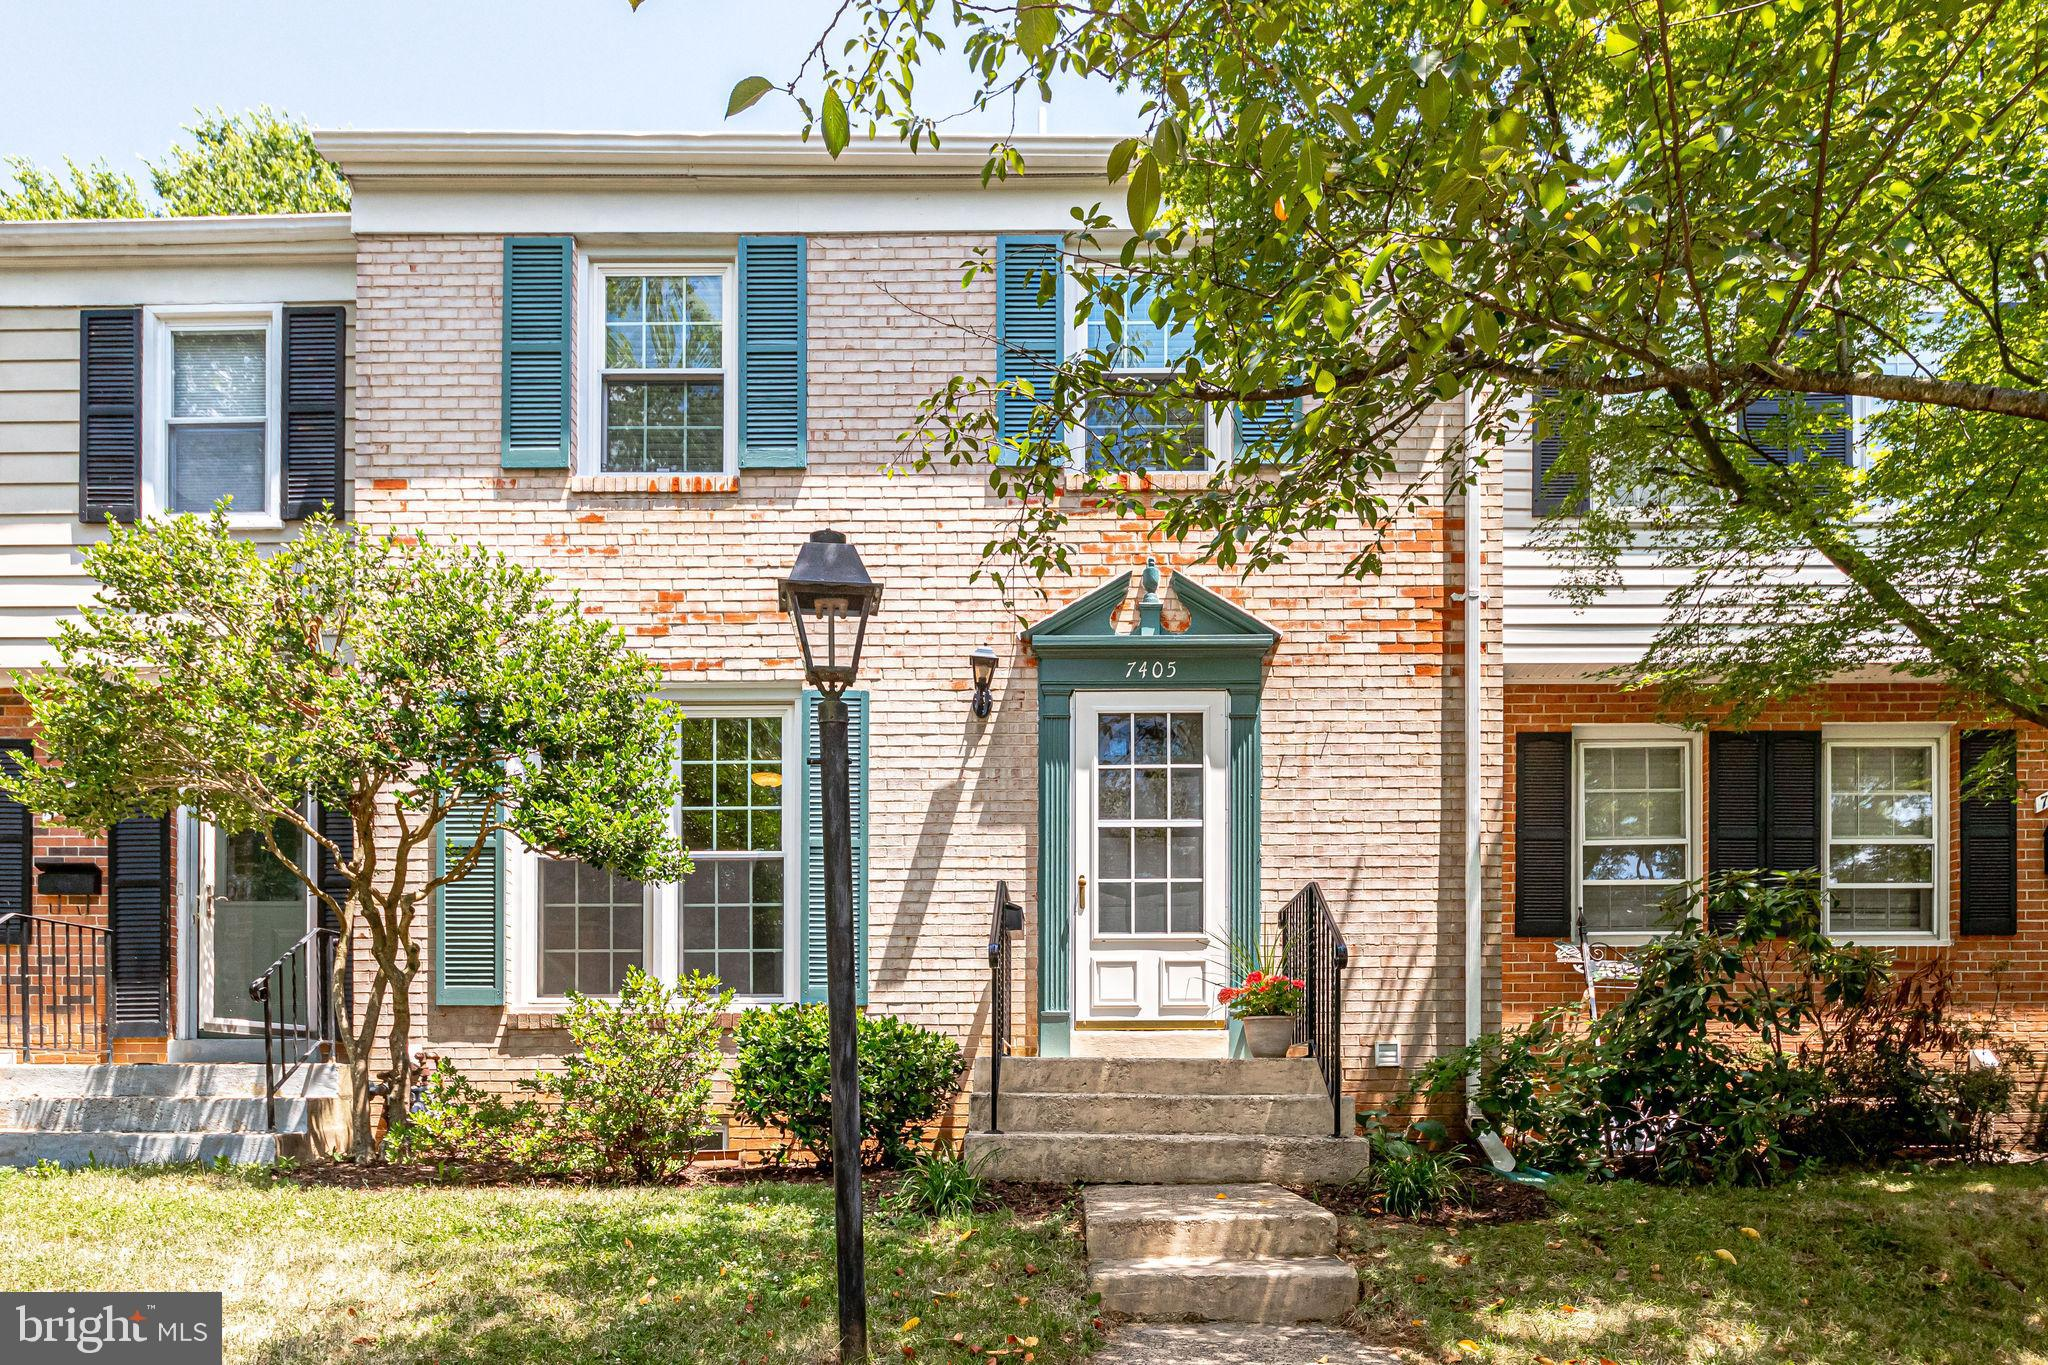 Welcome to this lovely renovated 3 bedroom, 4 bath brick townhome with many updates! This 1,900 sq.